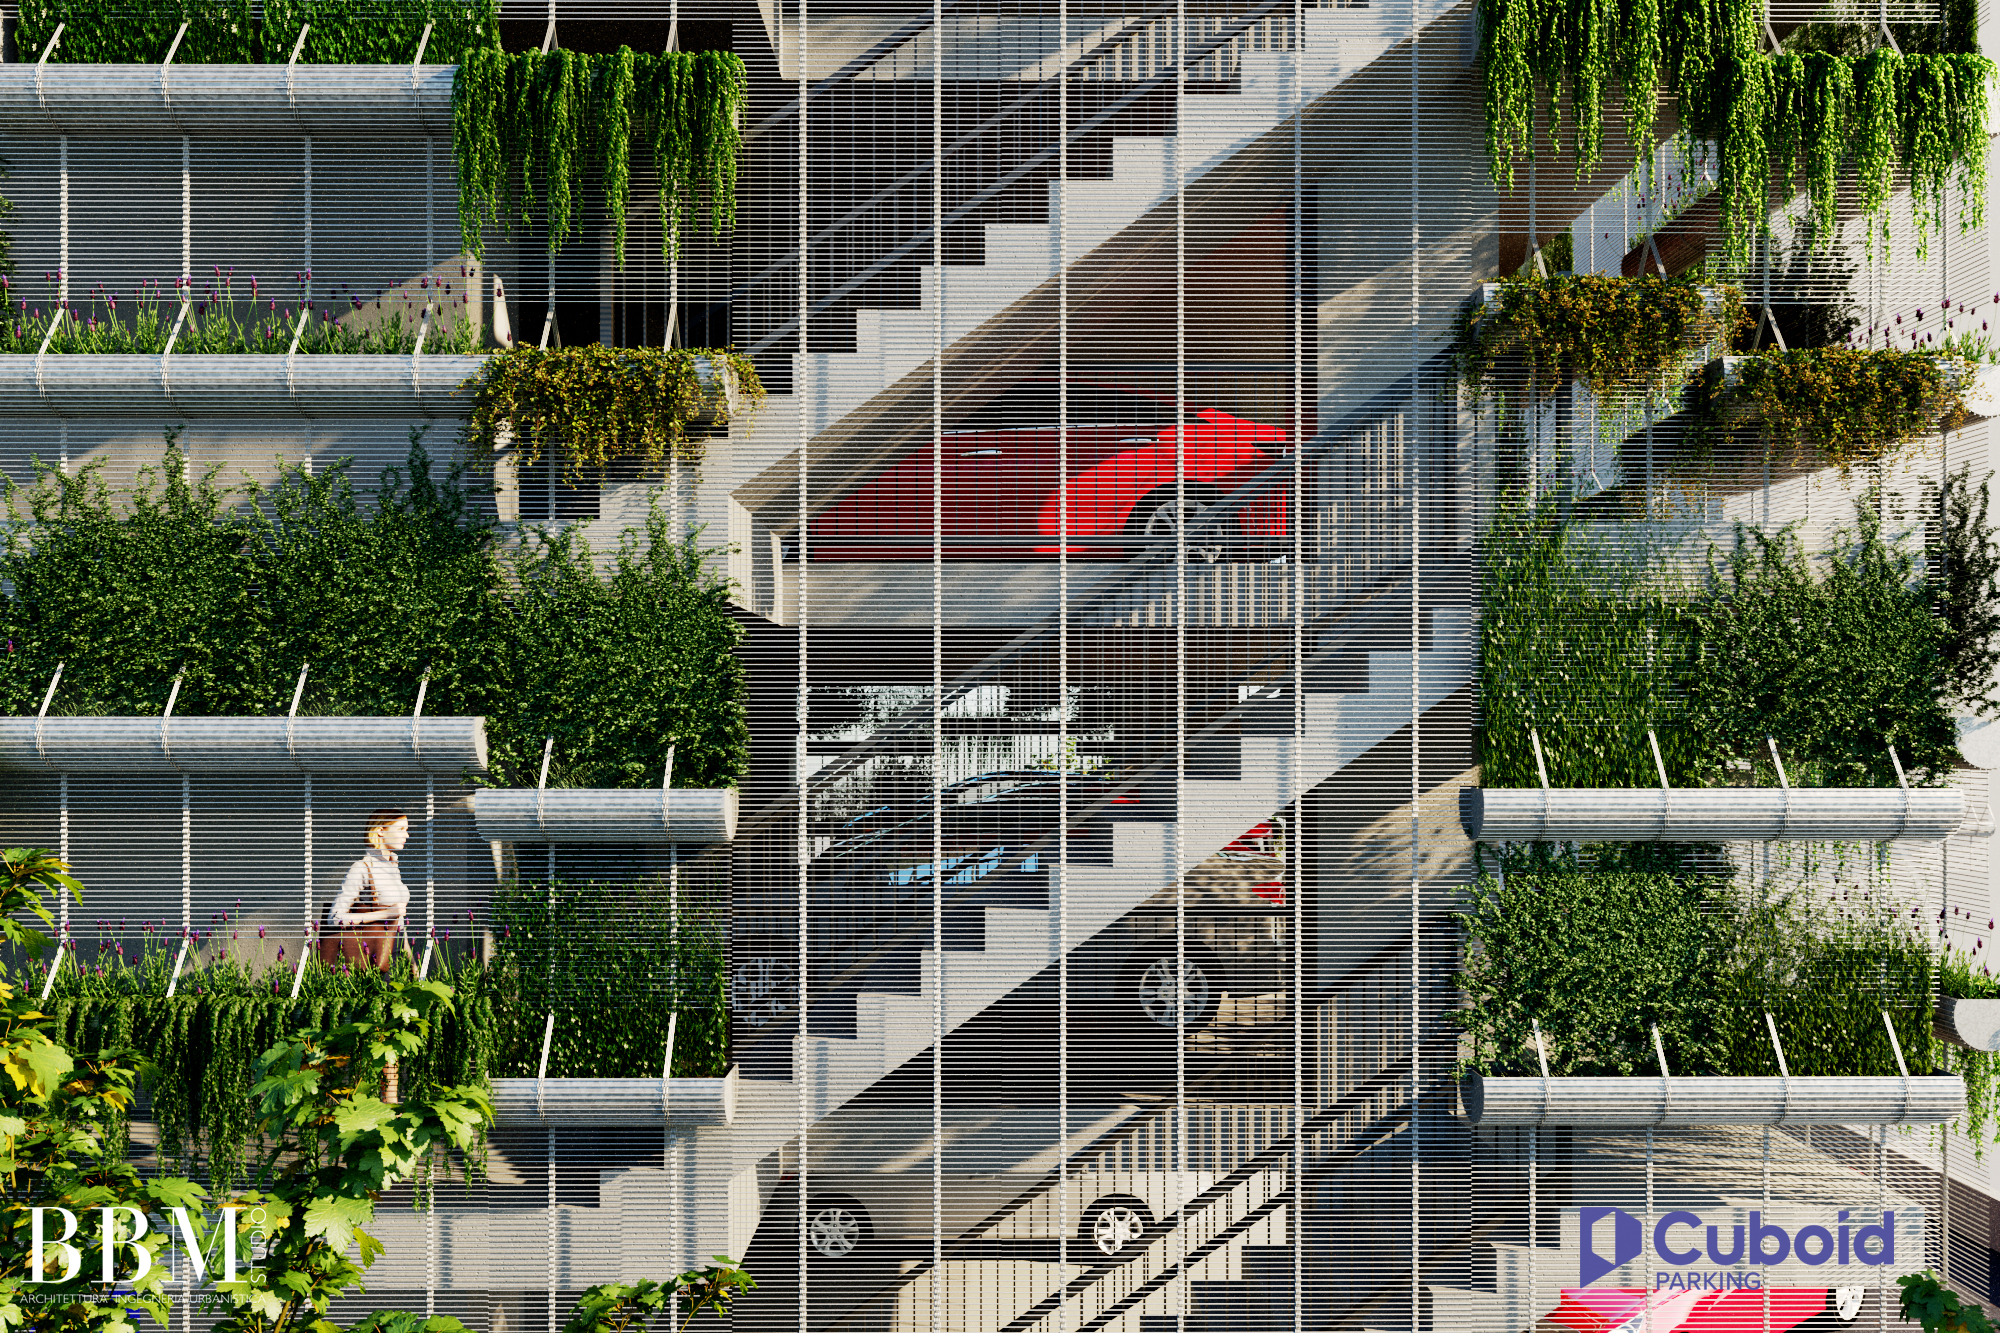 Cuboid Parking - Cuboid Treppenhaus